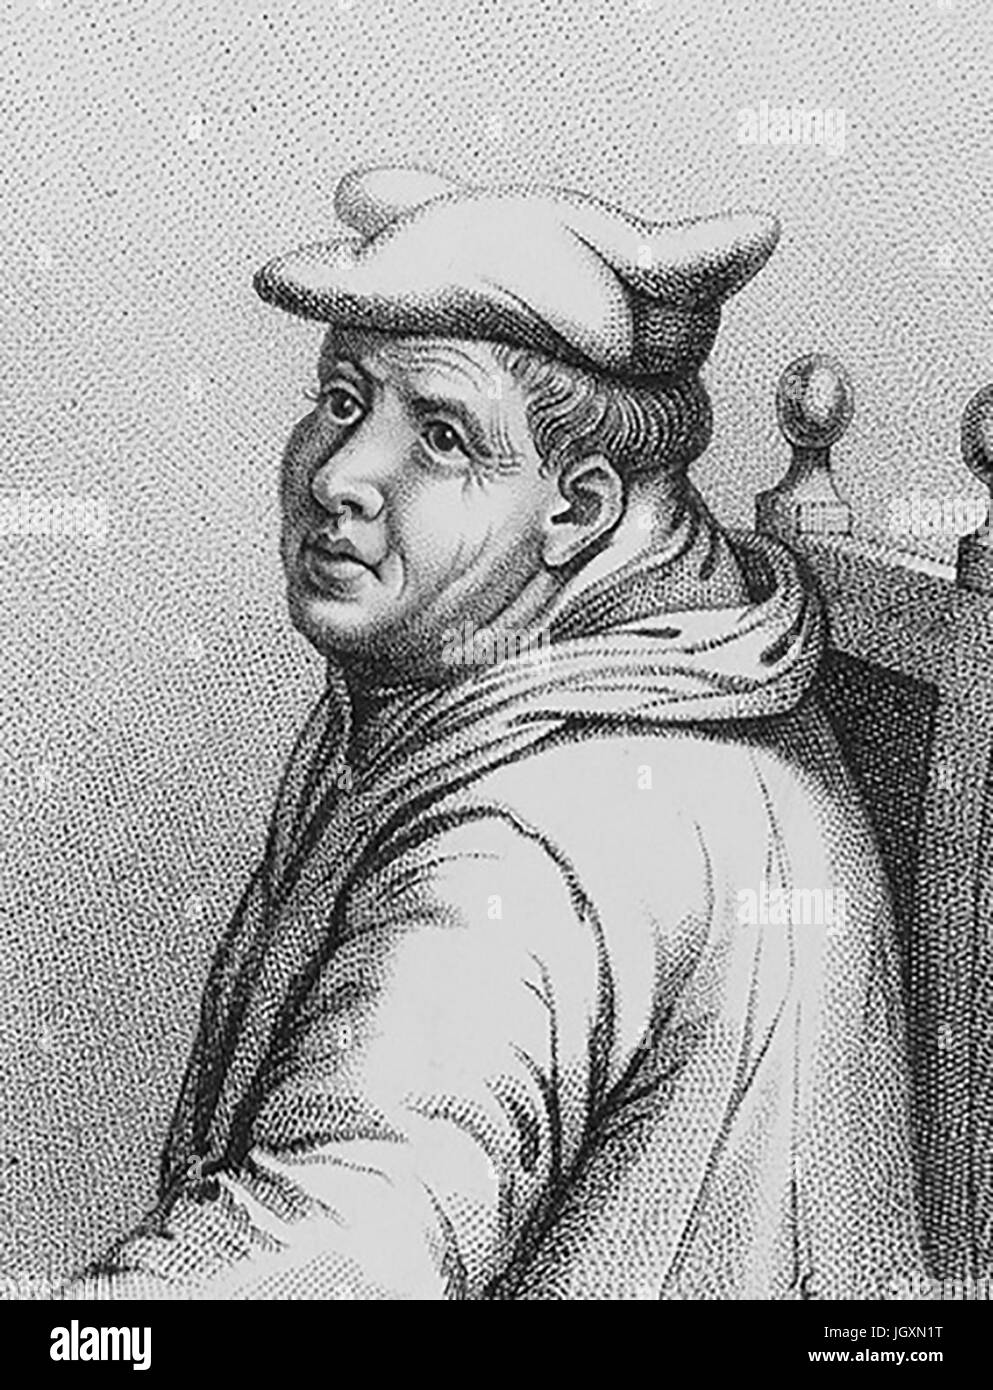 EDMUND BONNER (c 1500-1569) Bishop of London and persecutor of heretics under Mary I. A 19th century stipple engraving - Stock Image